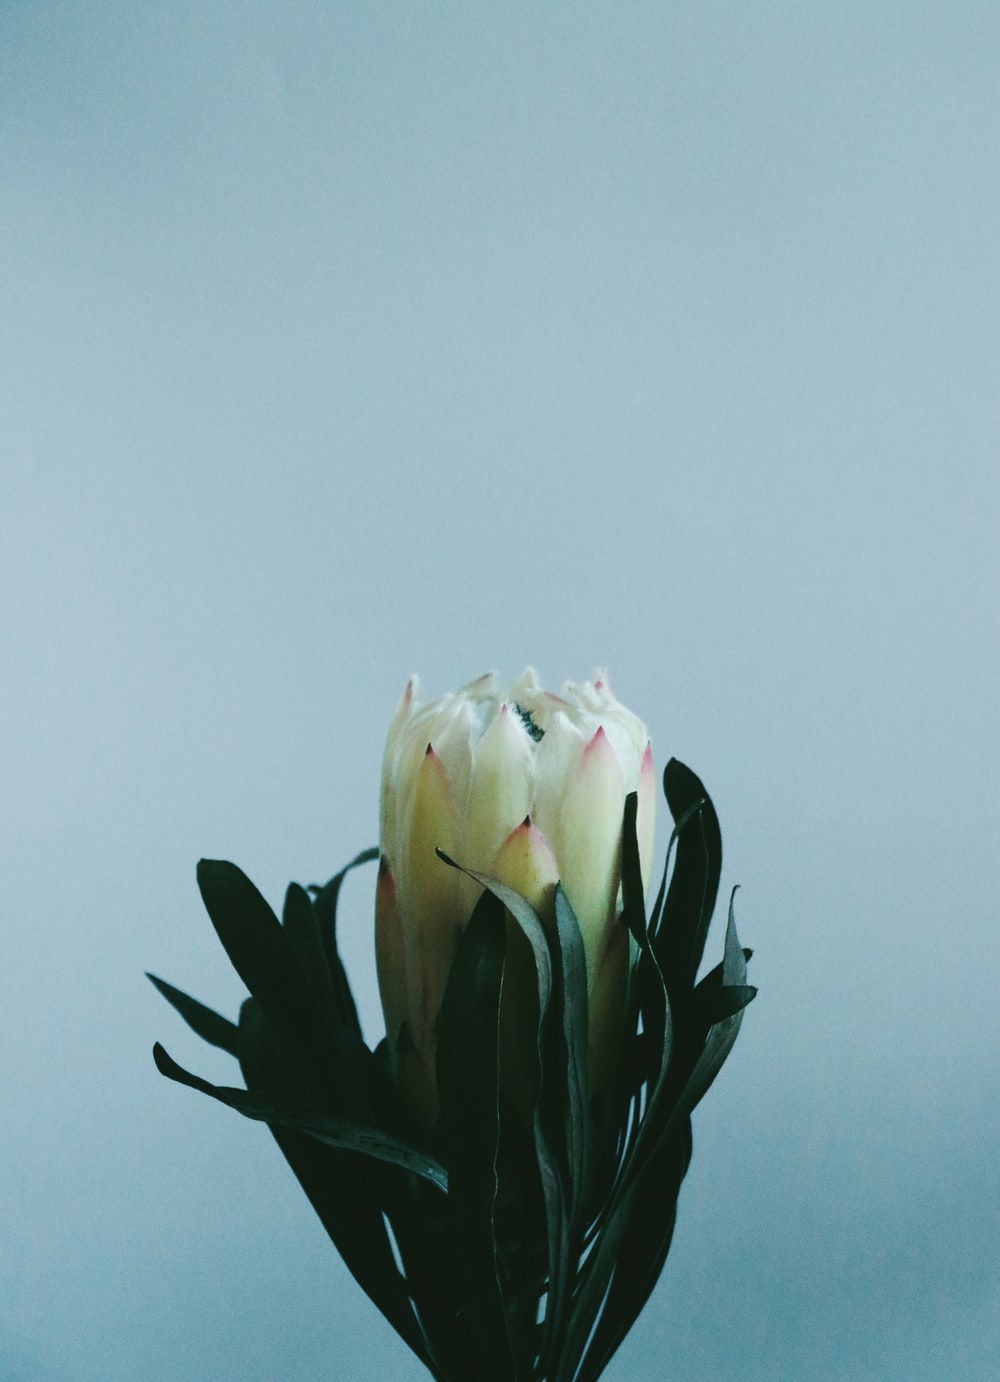 white and pink flower under gray sky